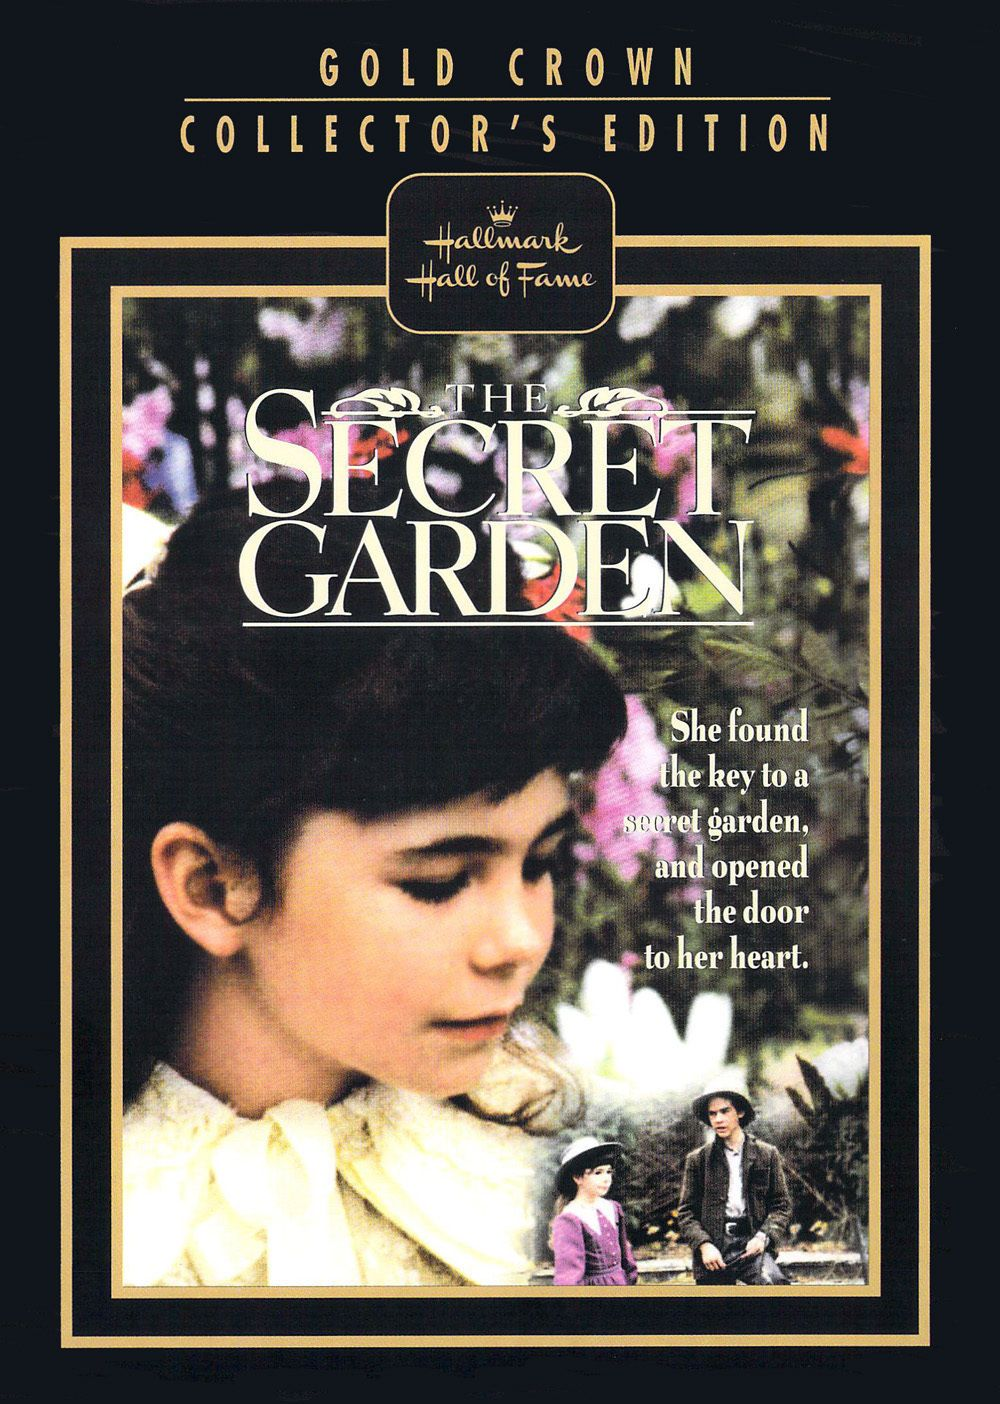 Details about THE SECRET GARDEN (1987) NEW SEALED DVD in